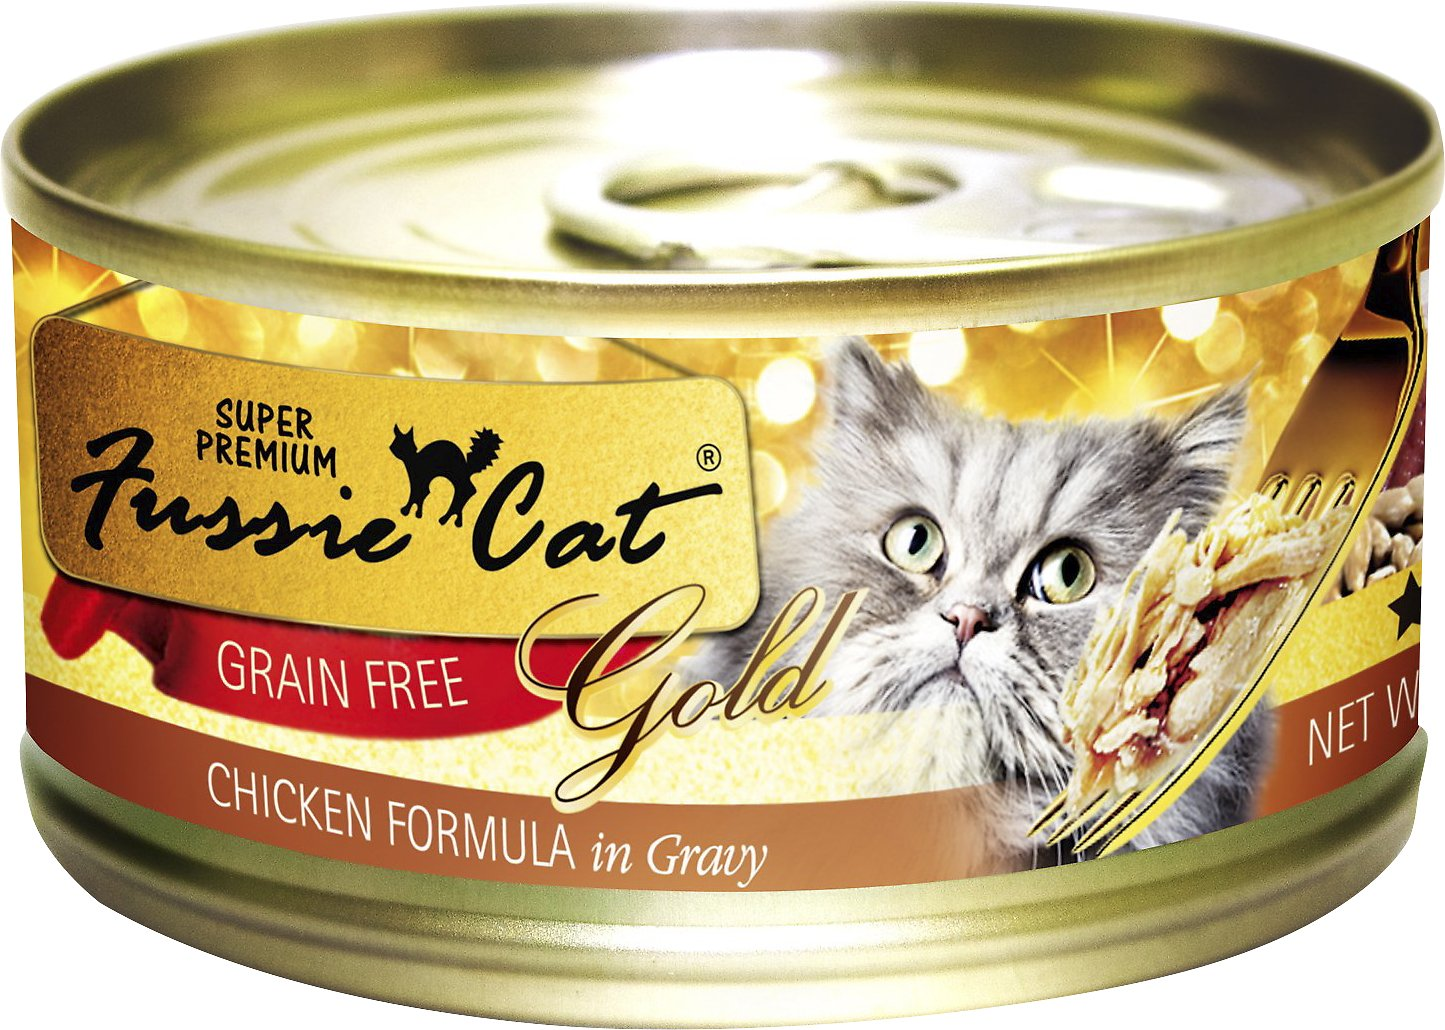 Fussie Cat Super Premium Chicken Formula in Gravy Grain-Free Canned Cat Food